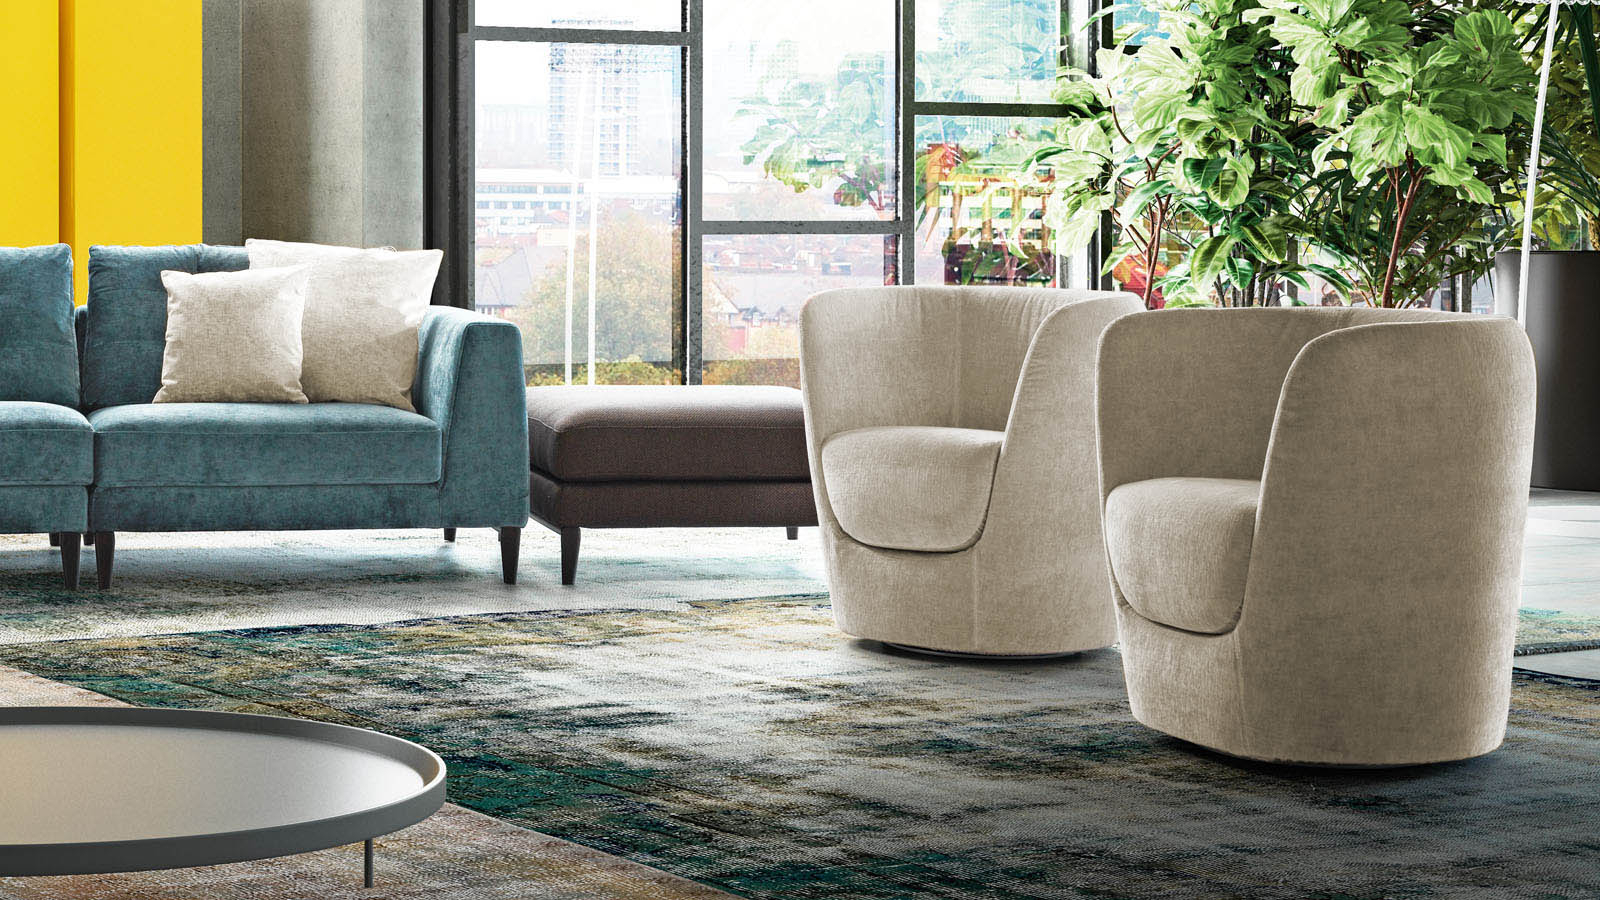 Pianca Intended For Draco Armchairs (View 8 of 15)